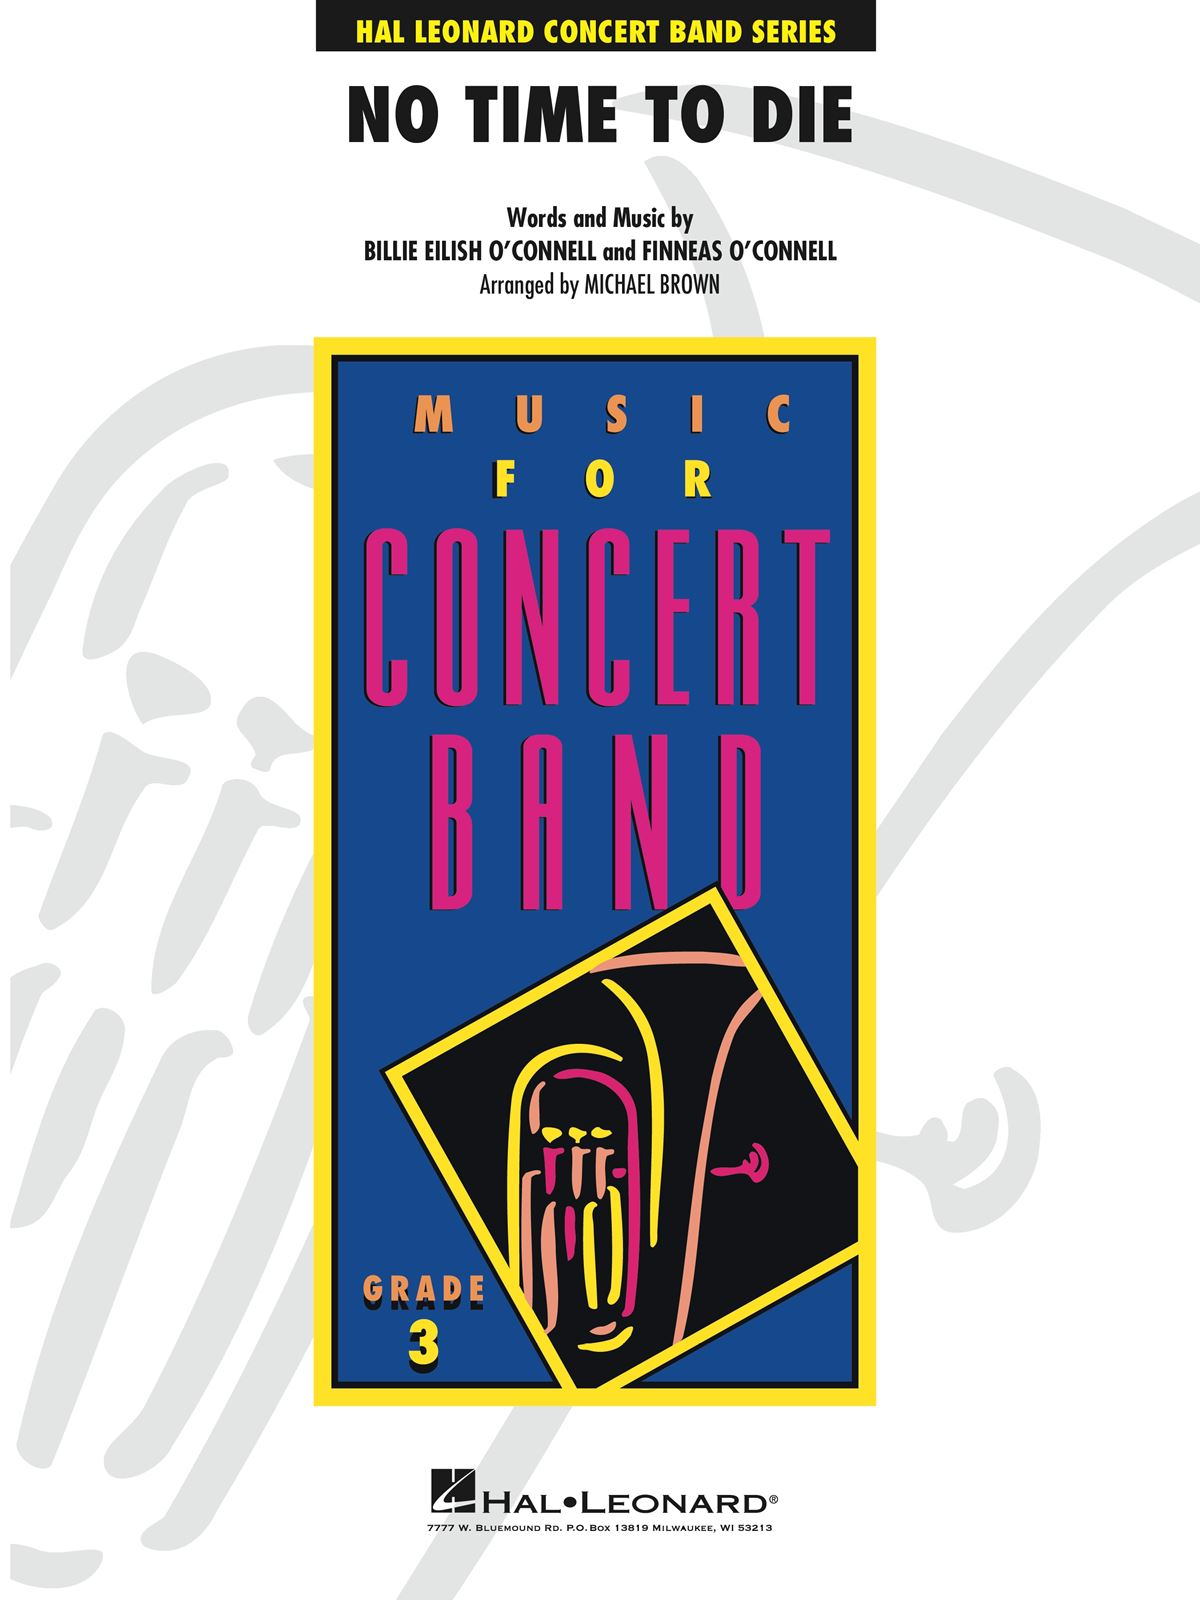 Billie Eilish: No Time to Die (from No Time To Die): Concert Band: Score and Parts